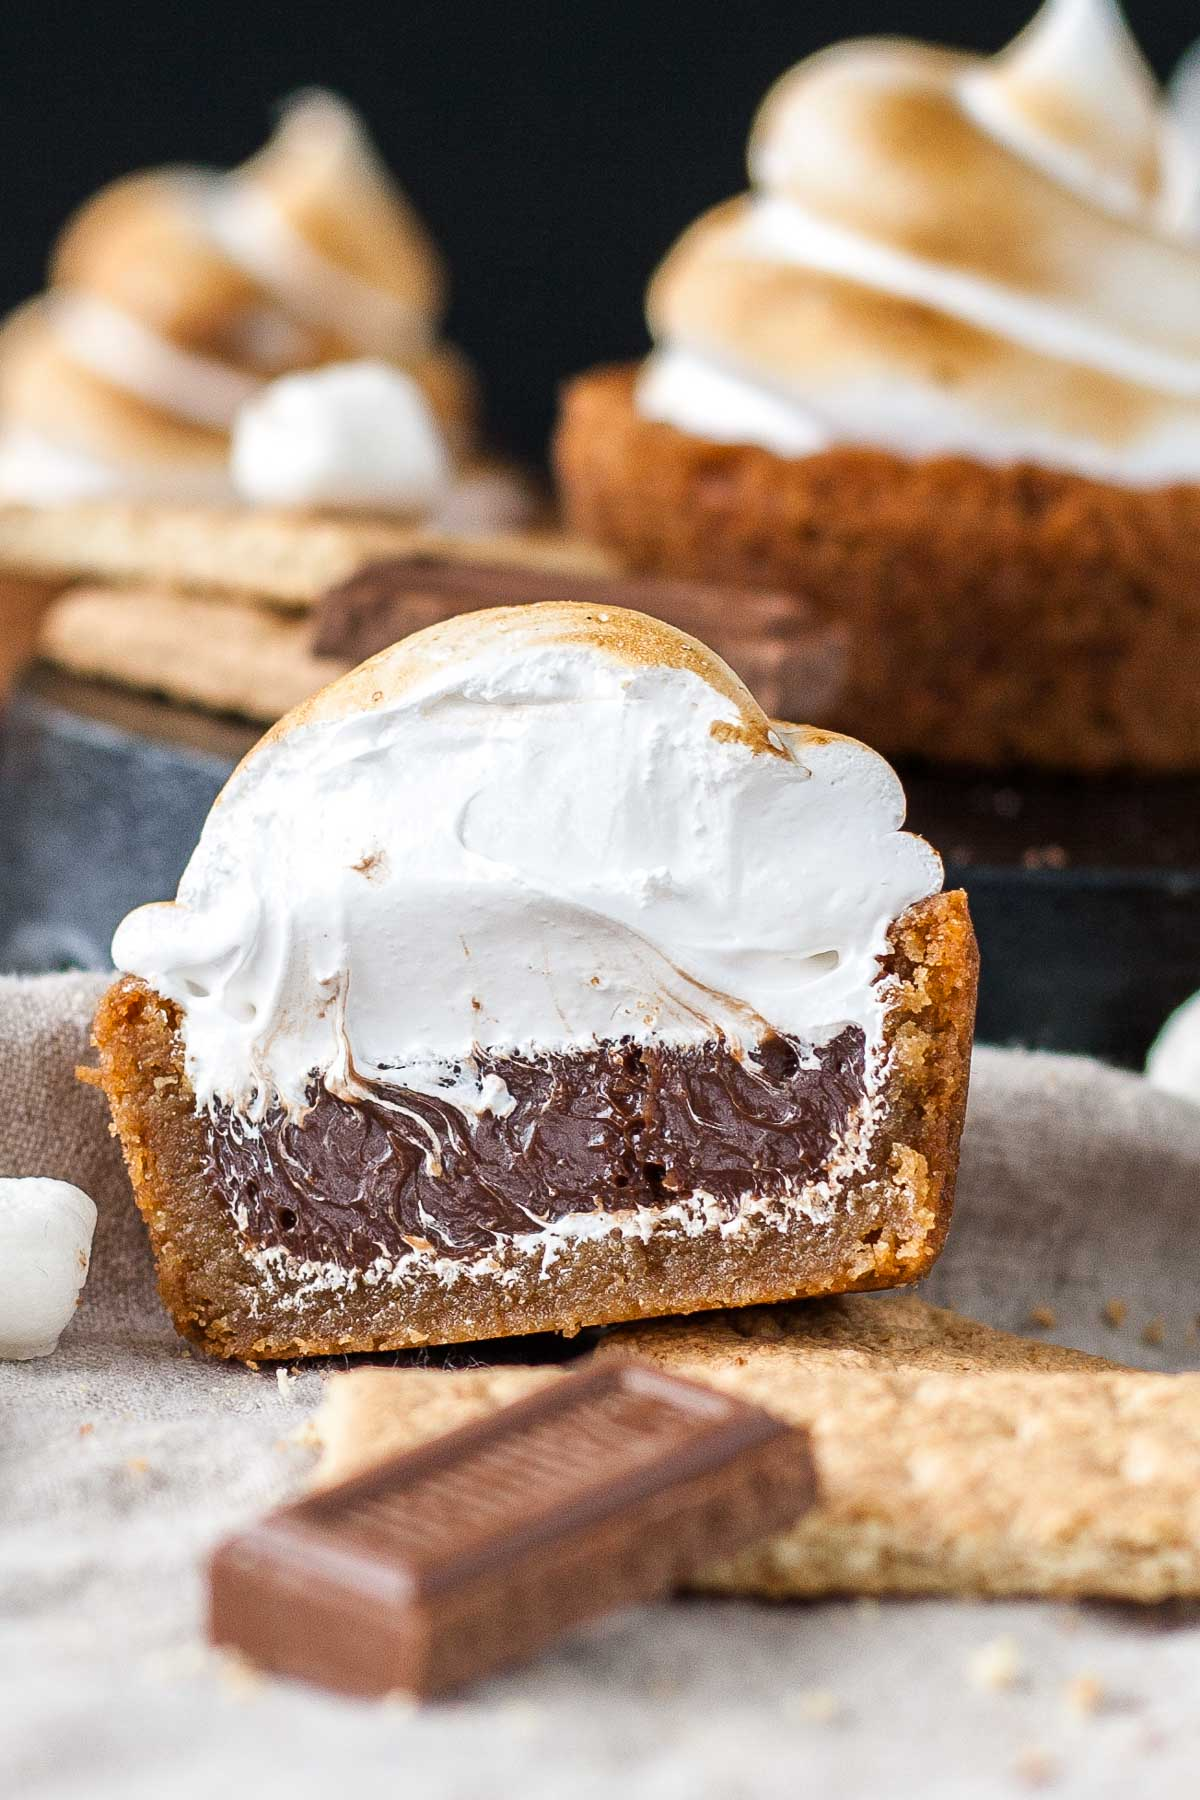 No Campfire Needed For These Smores Cookie Cups Graham Cracker Filled